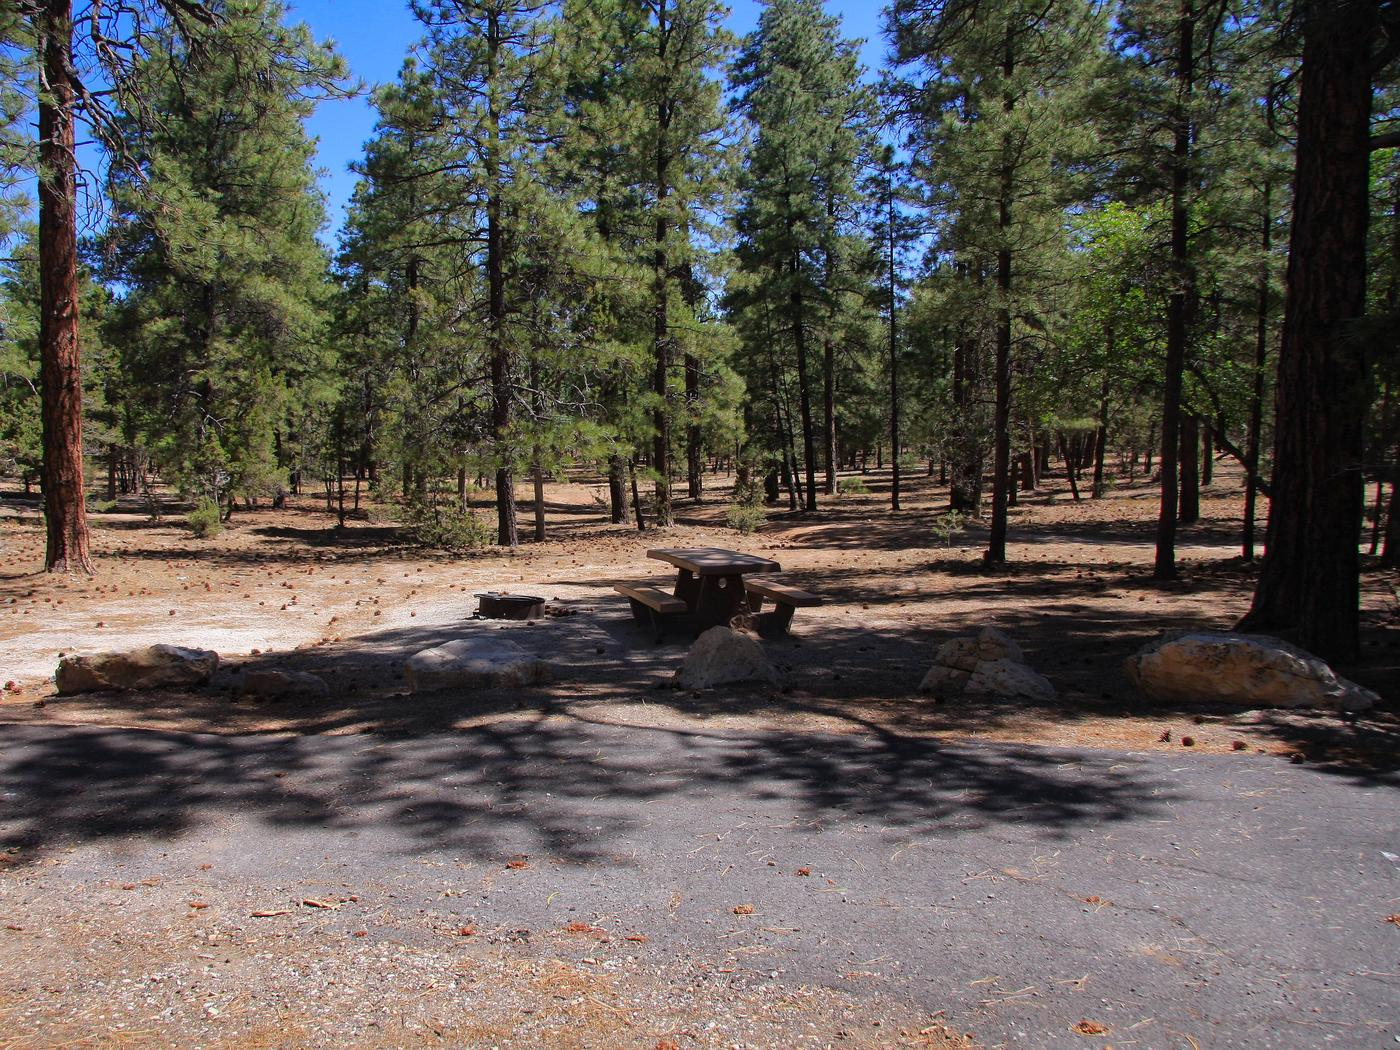 Parking spot and picnic table, Mather CampgroundThe parking spot and picnic table for Aspen Loop 15, Mather Campground